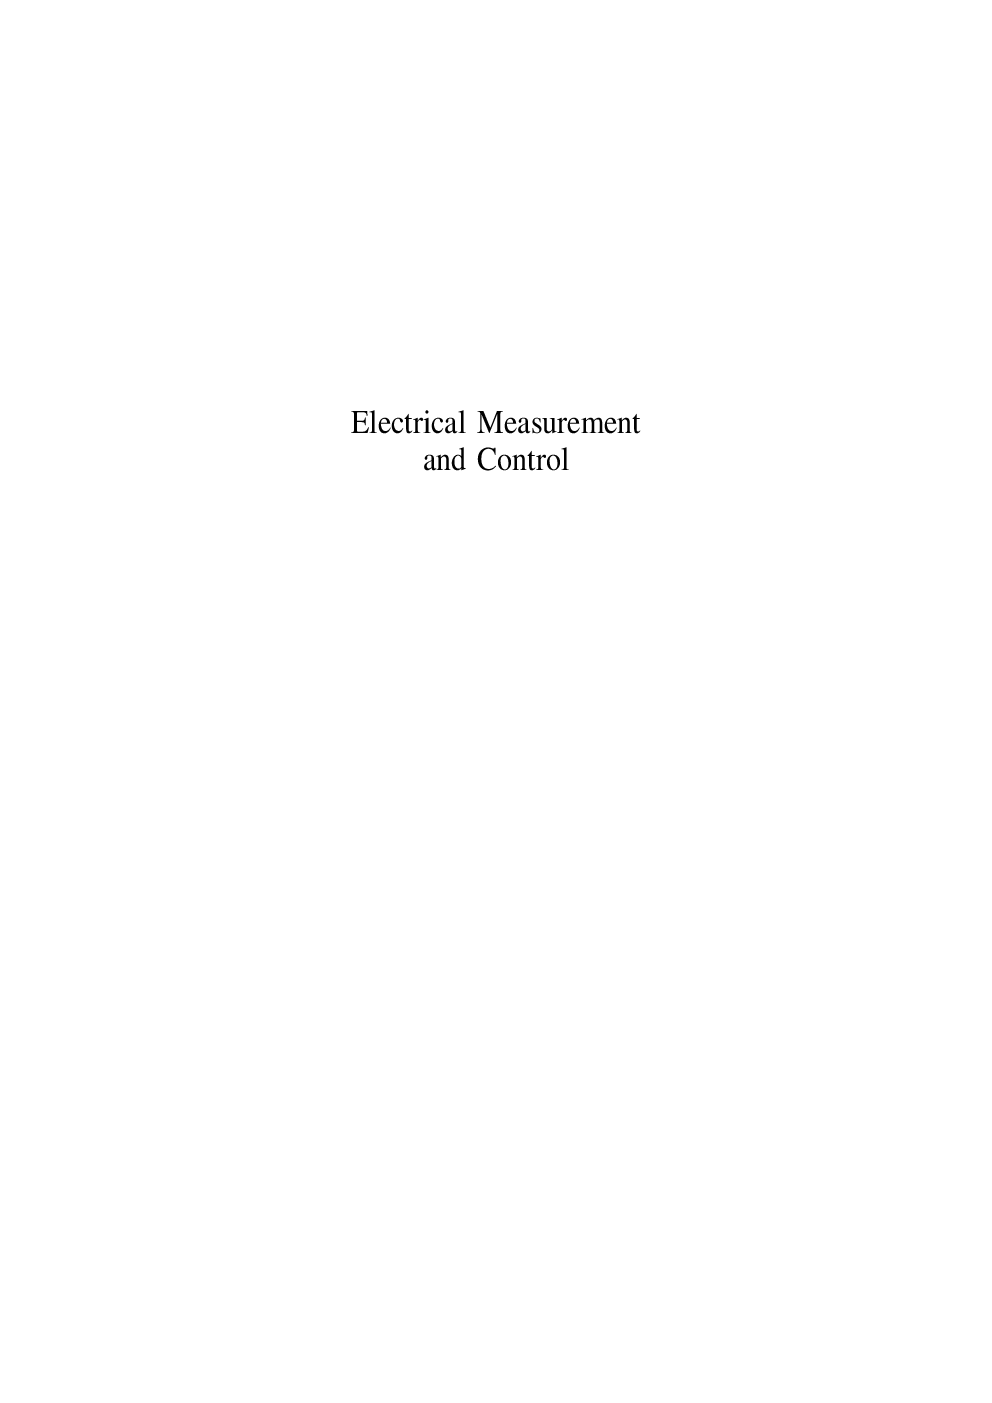 Electrical Measurement And Control (WBSCTE) - Page 2